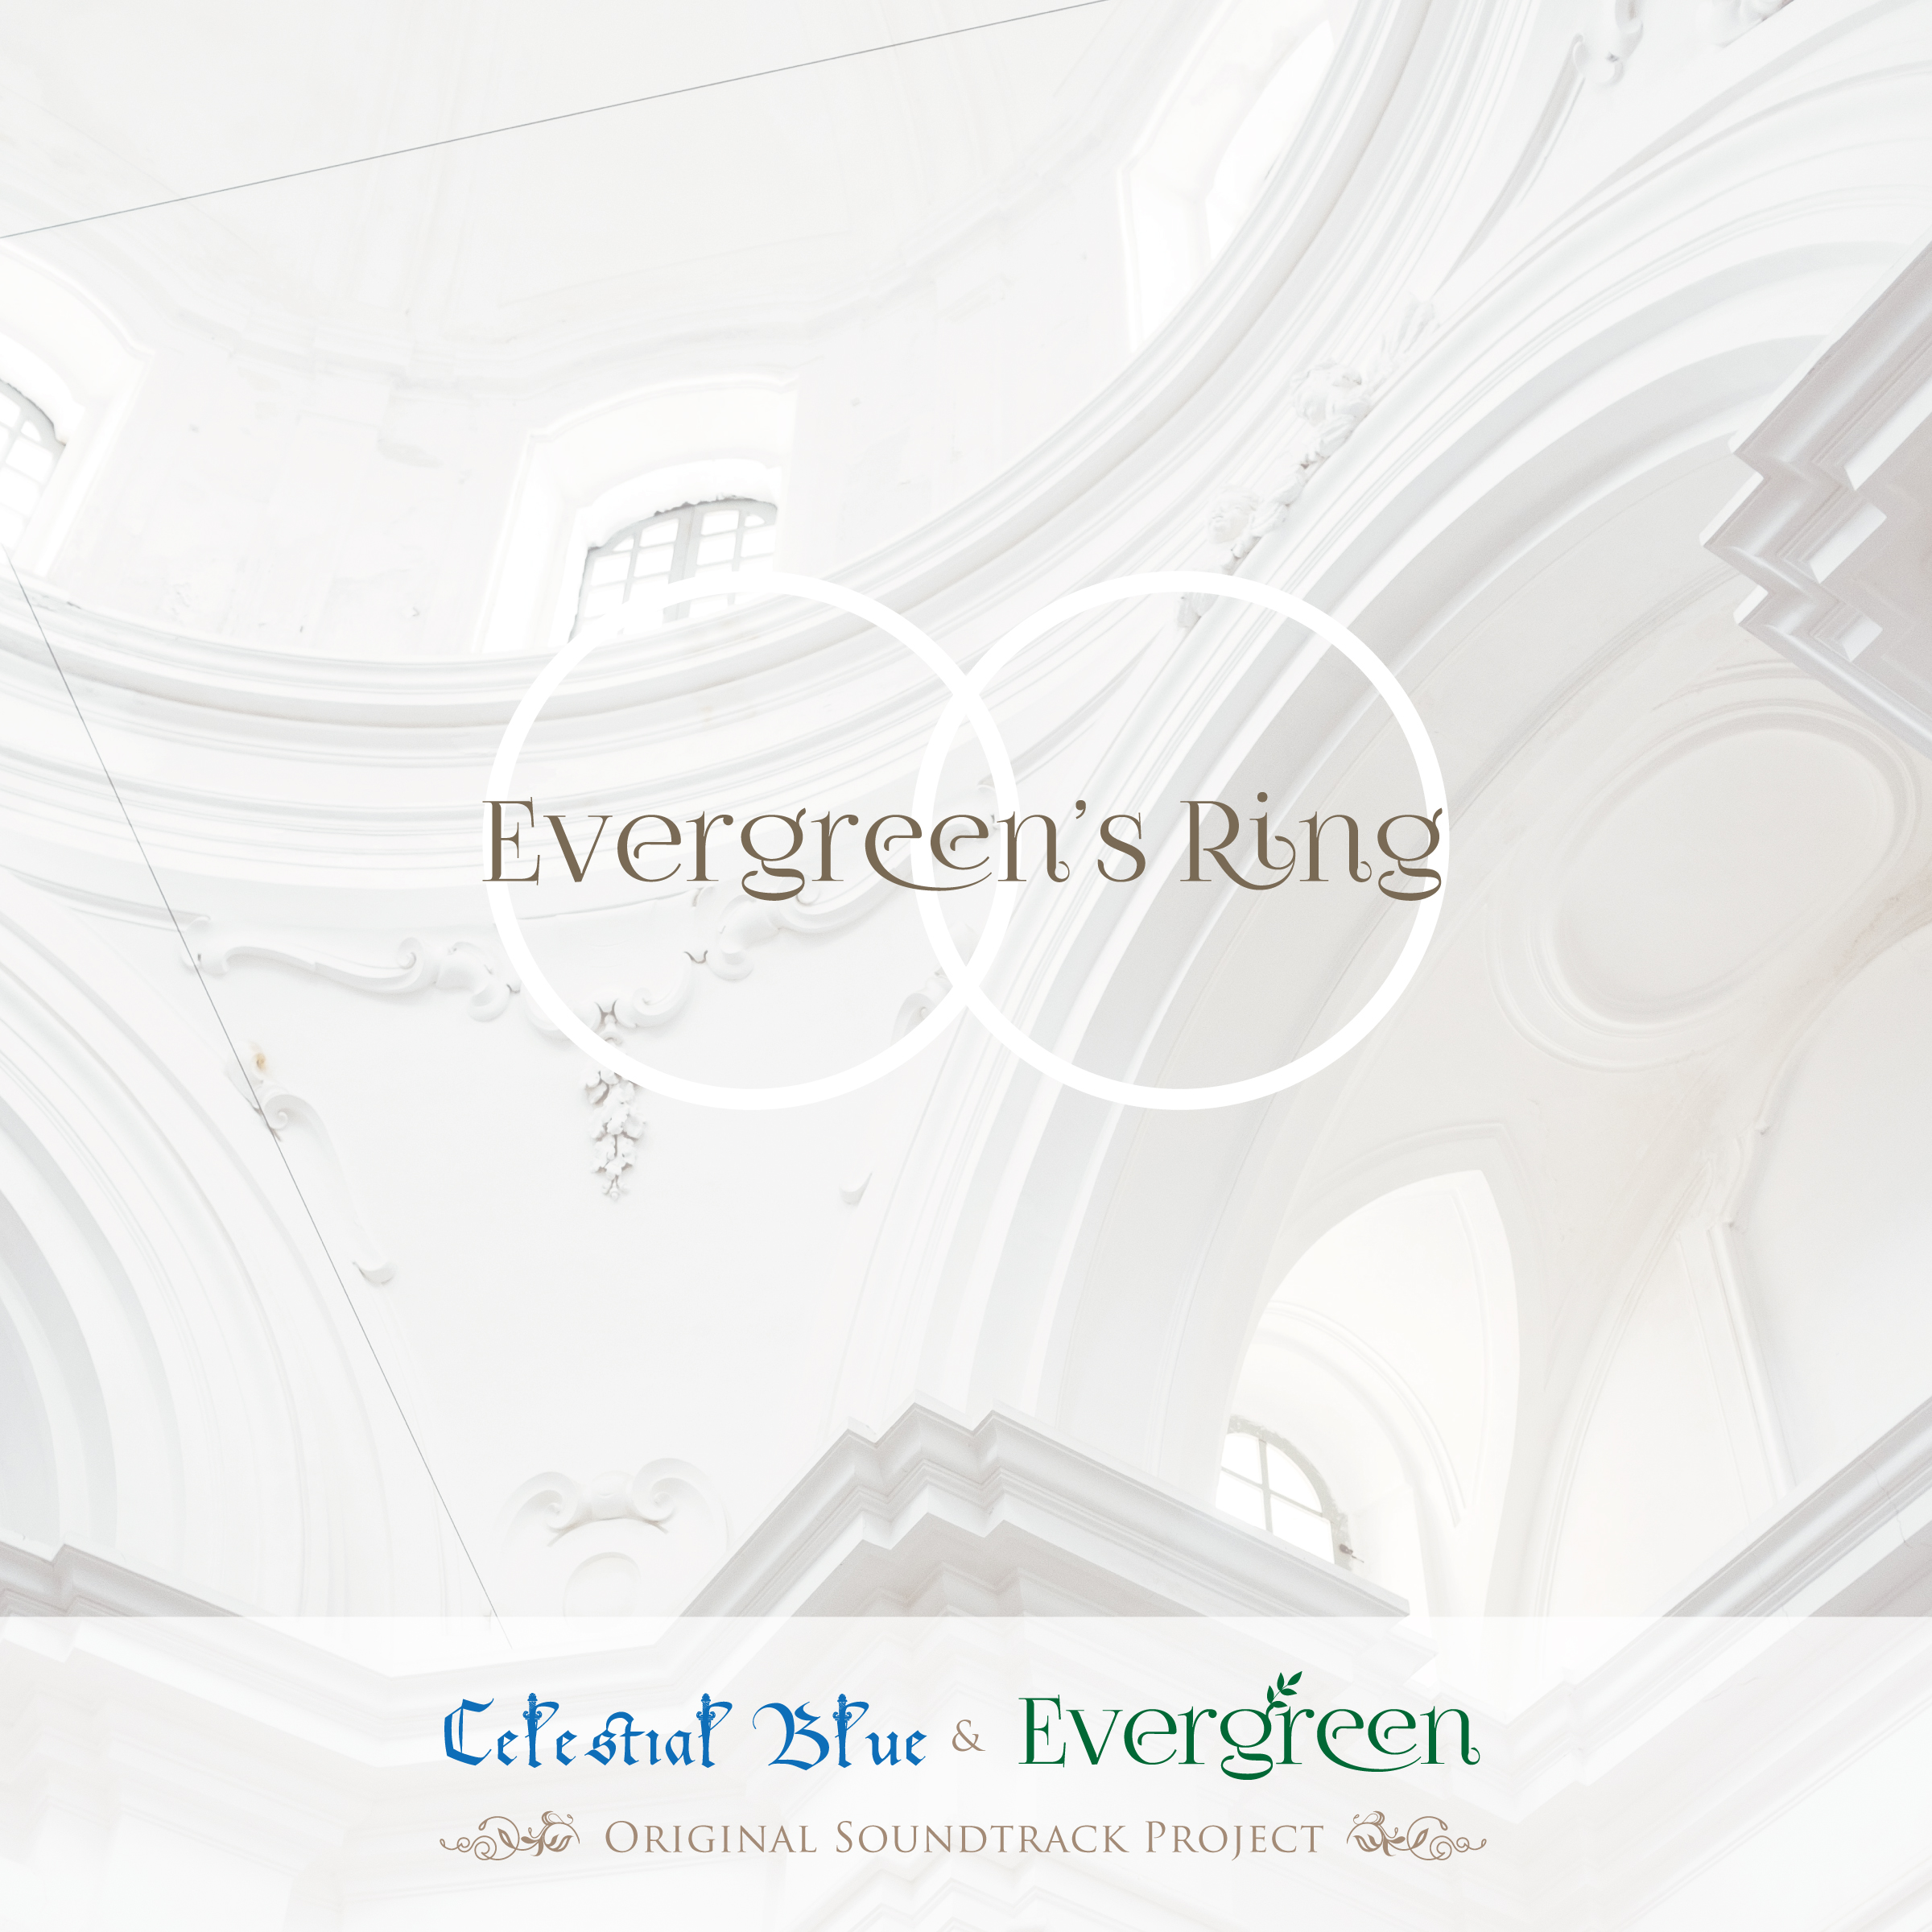 Evergreen's Ring